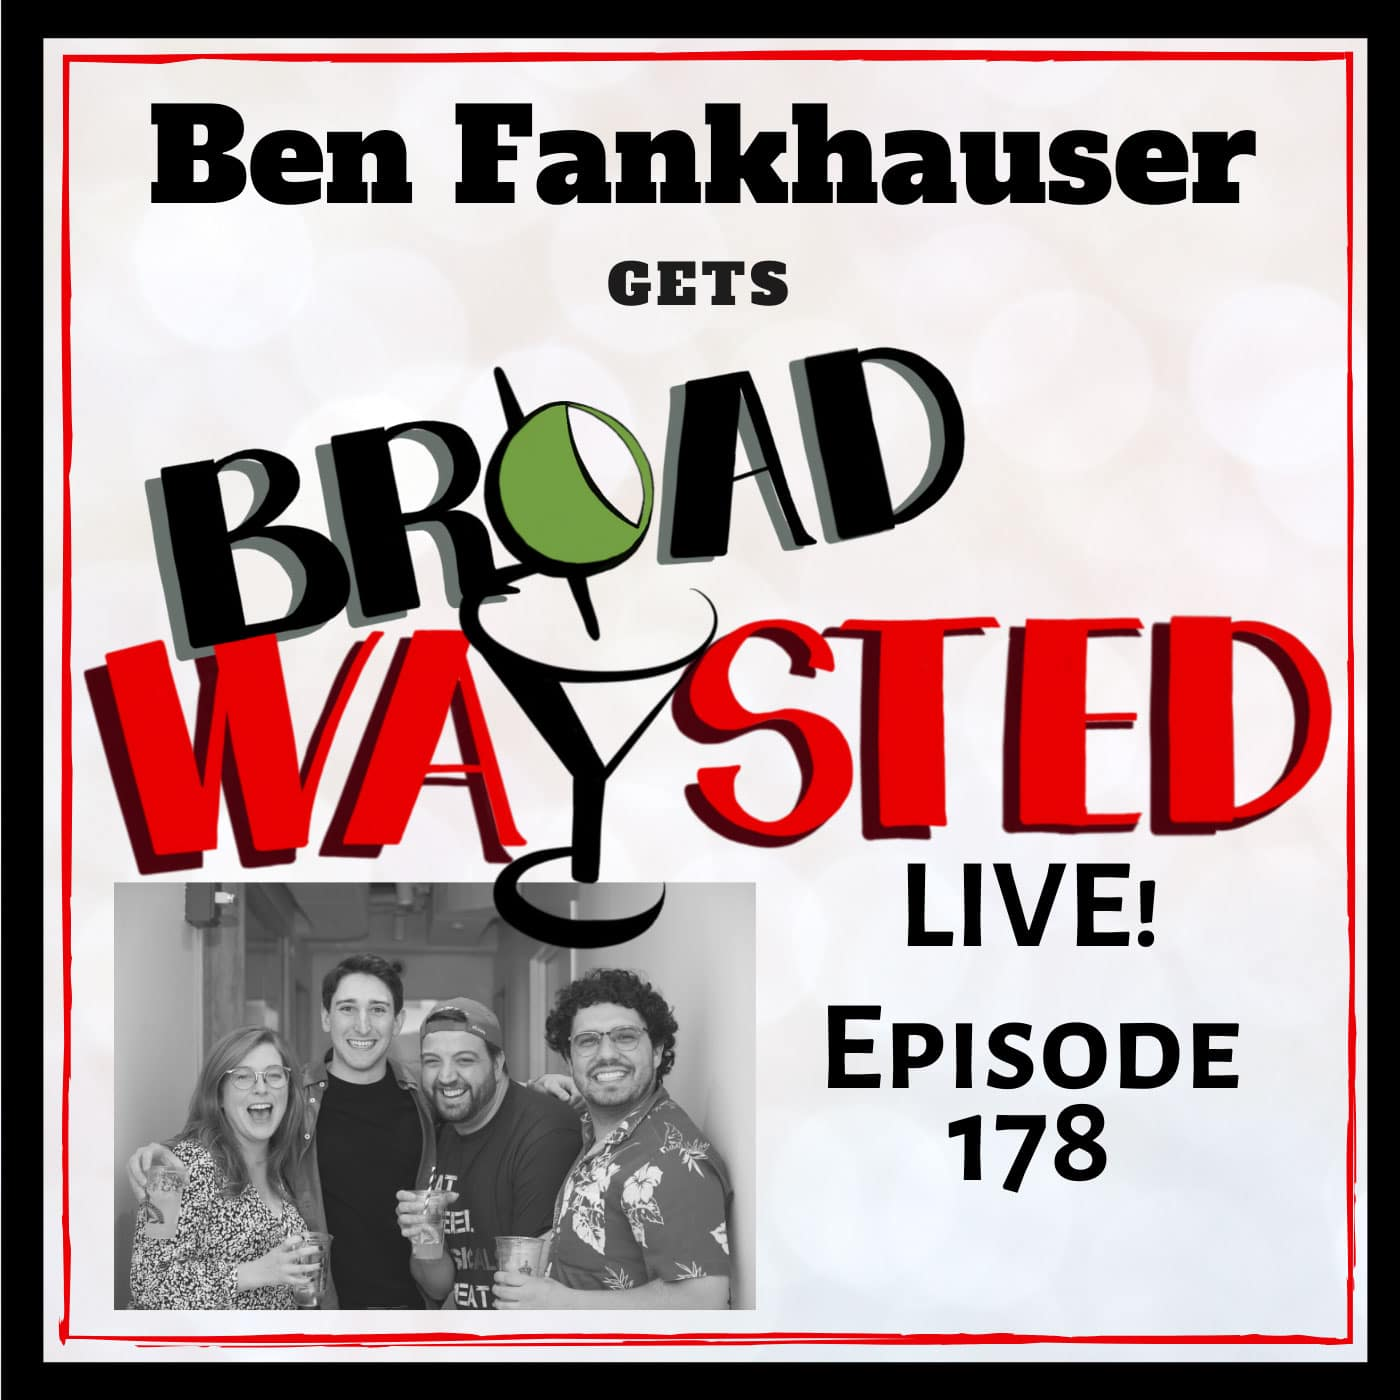 Broadwaysted Episode 178 Ben Fankhauser